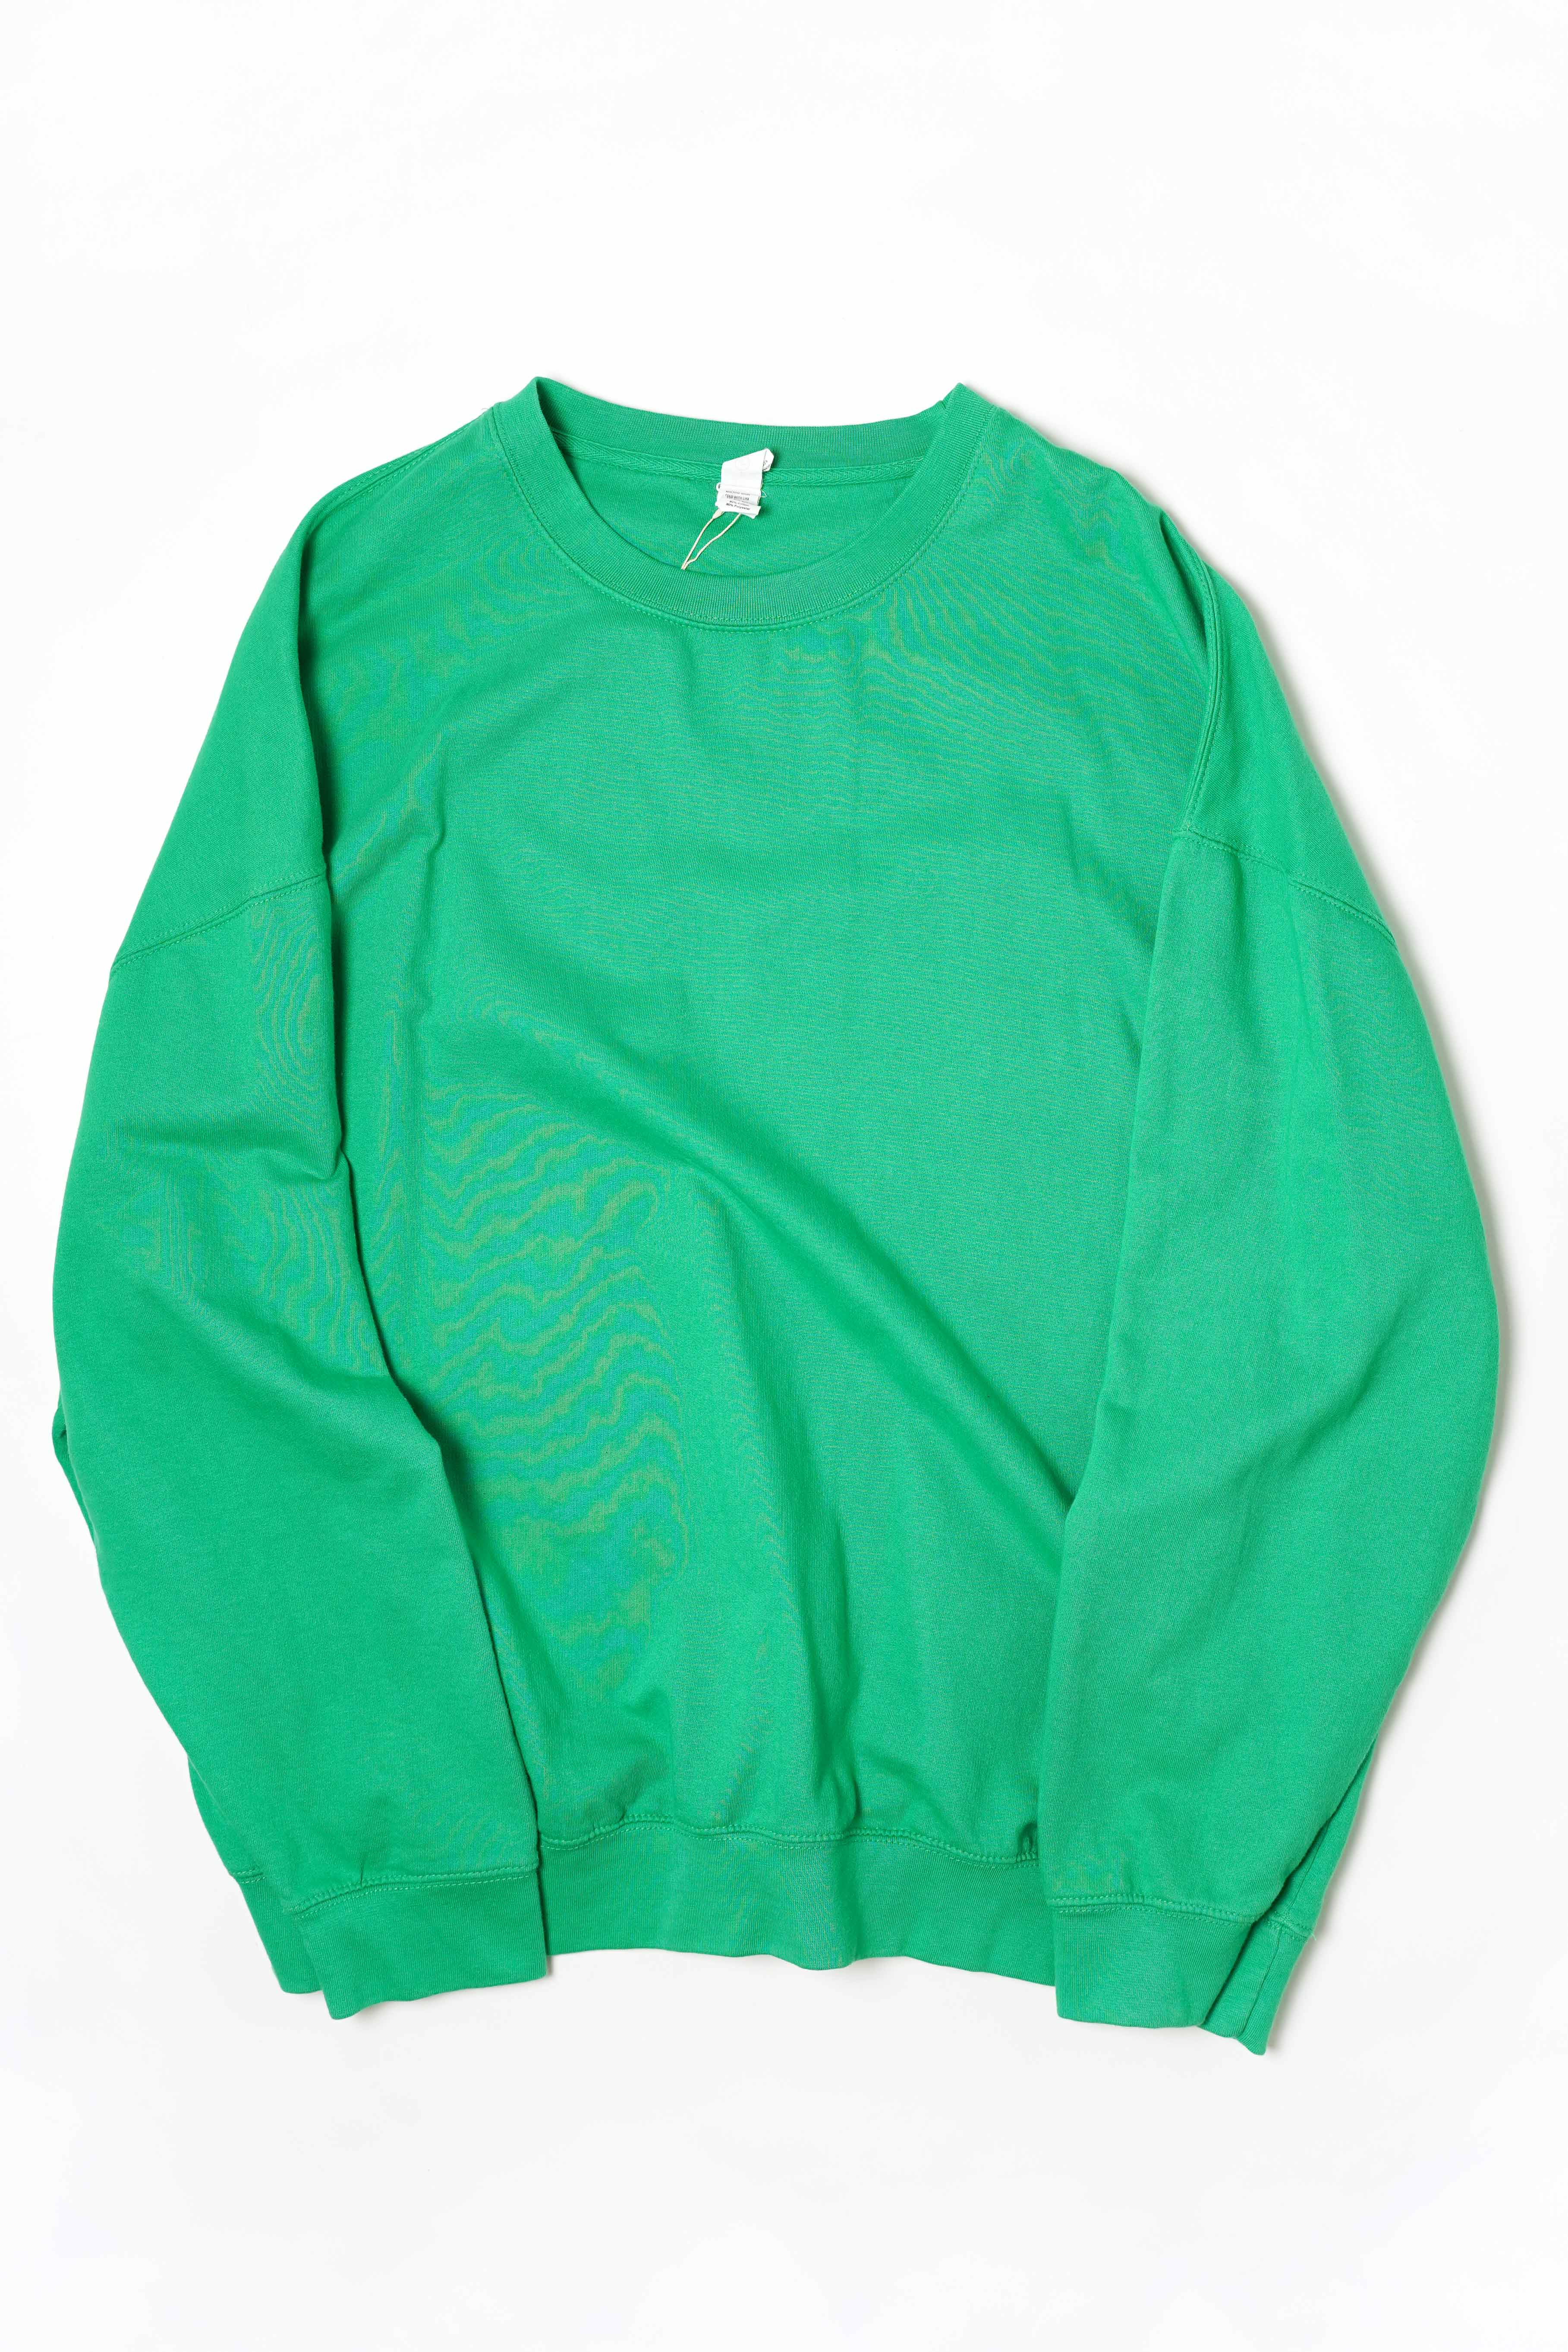 OVER SIZED SWEAT DEAD STOCK GREEN COLOR